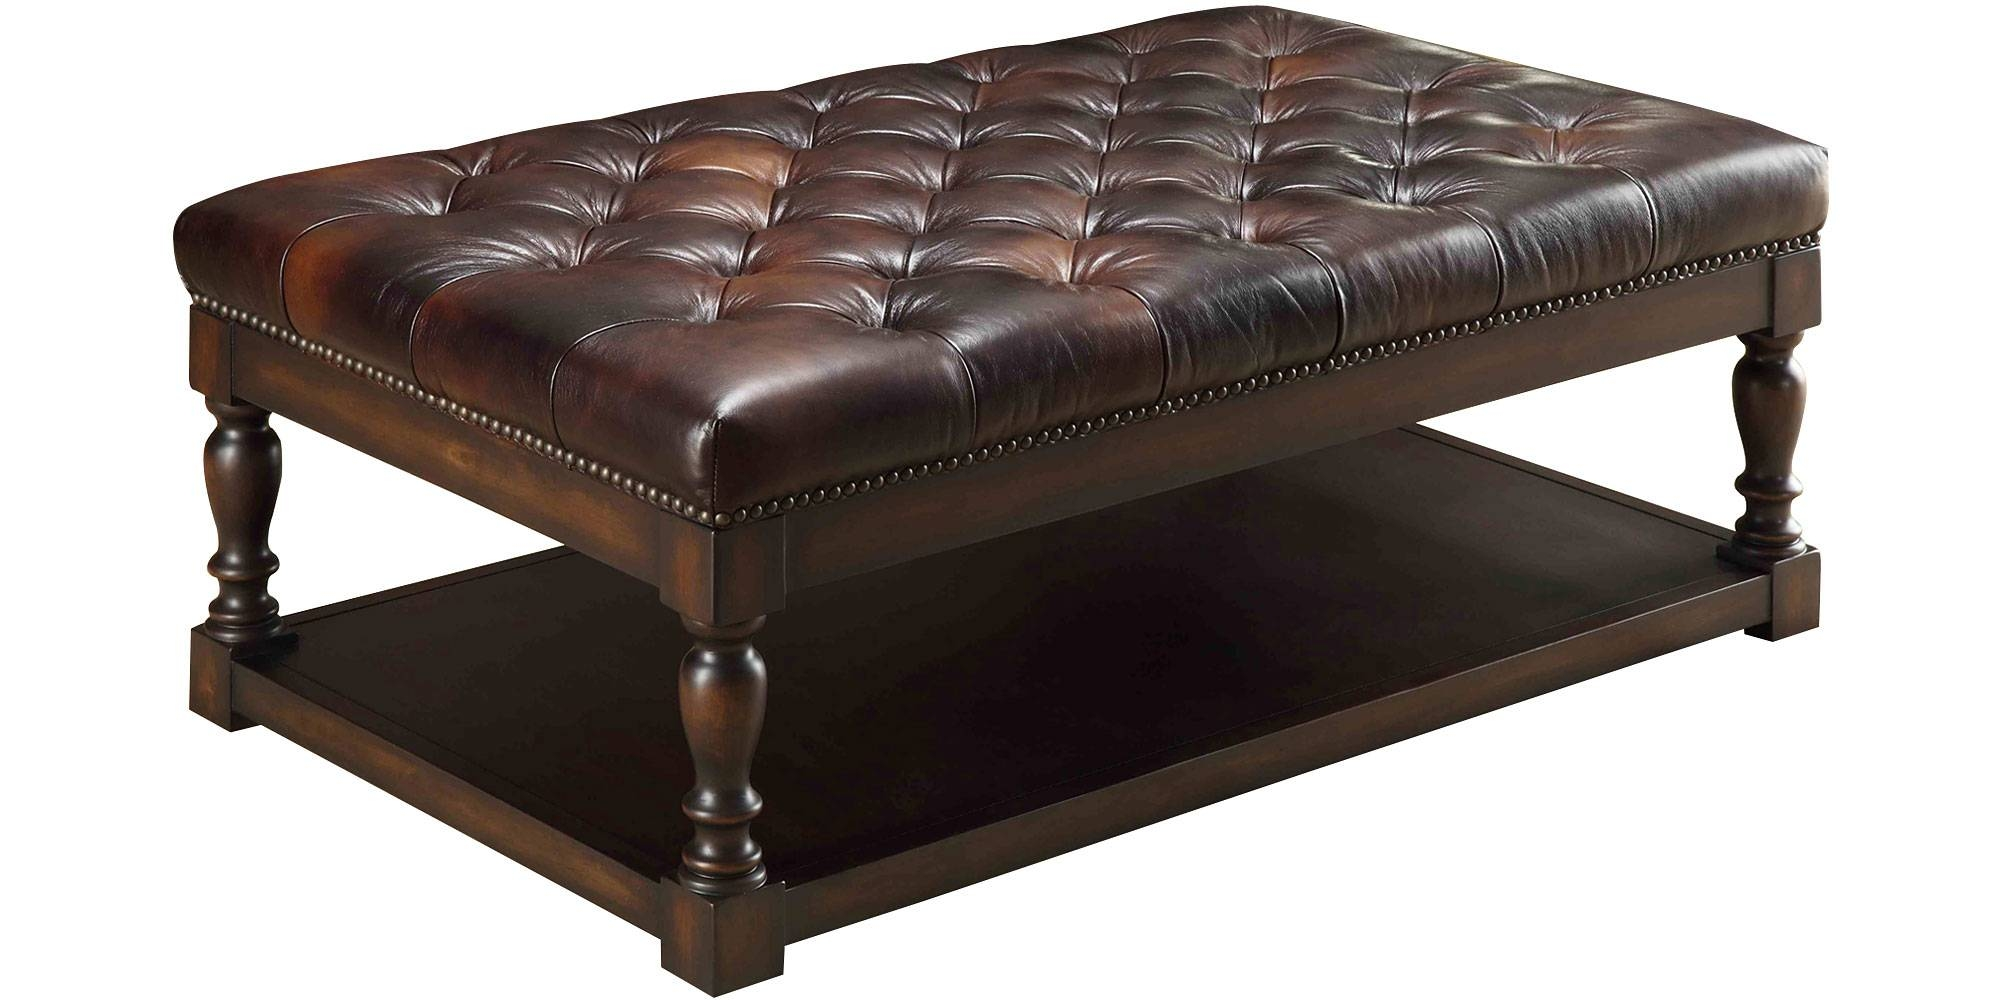 Modern Leather Ottoman Coffee Table With Shelves And Wooden Leg with regard to Coffee Tables With Shelves (Image 24 of 30)